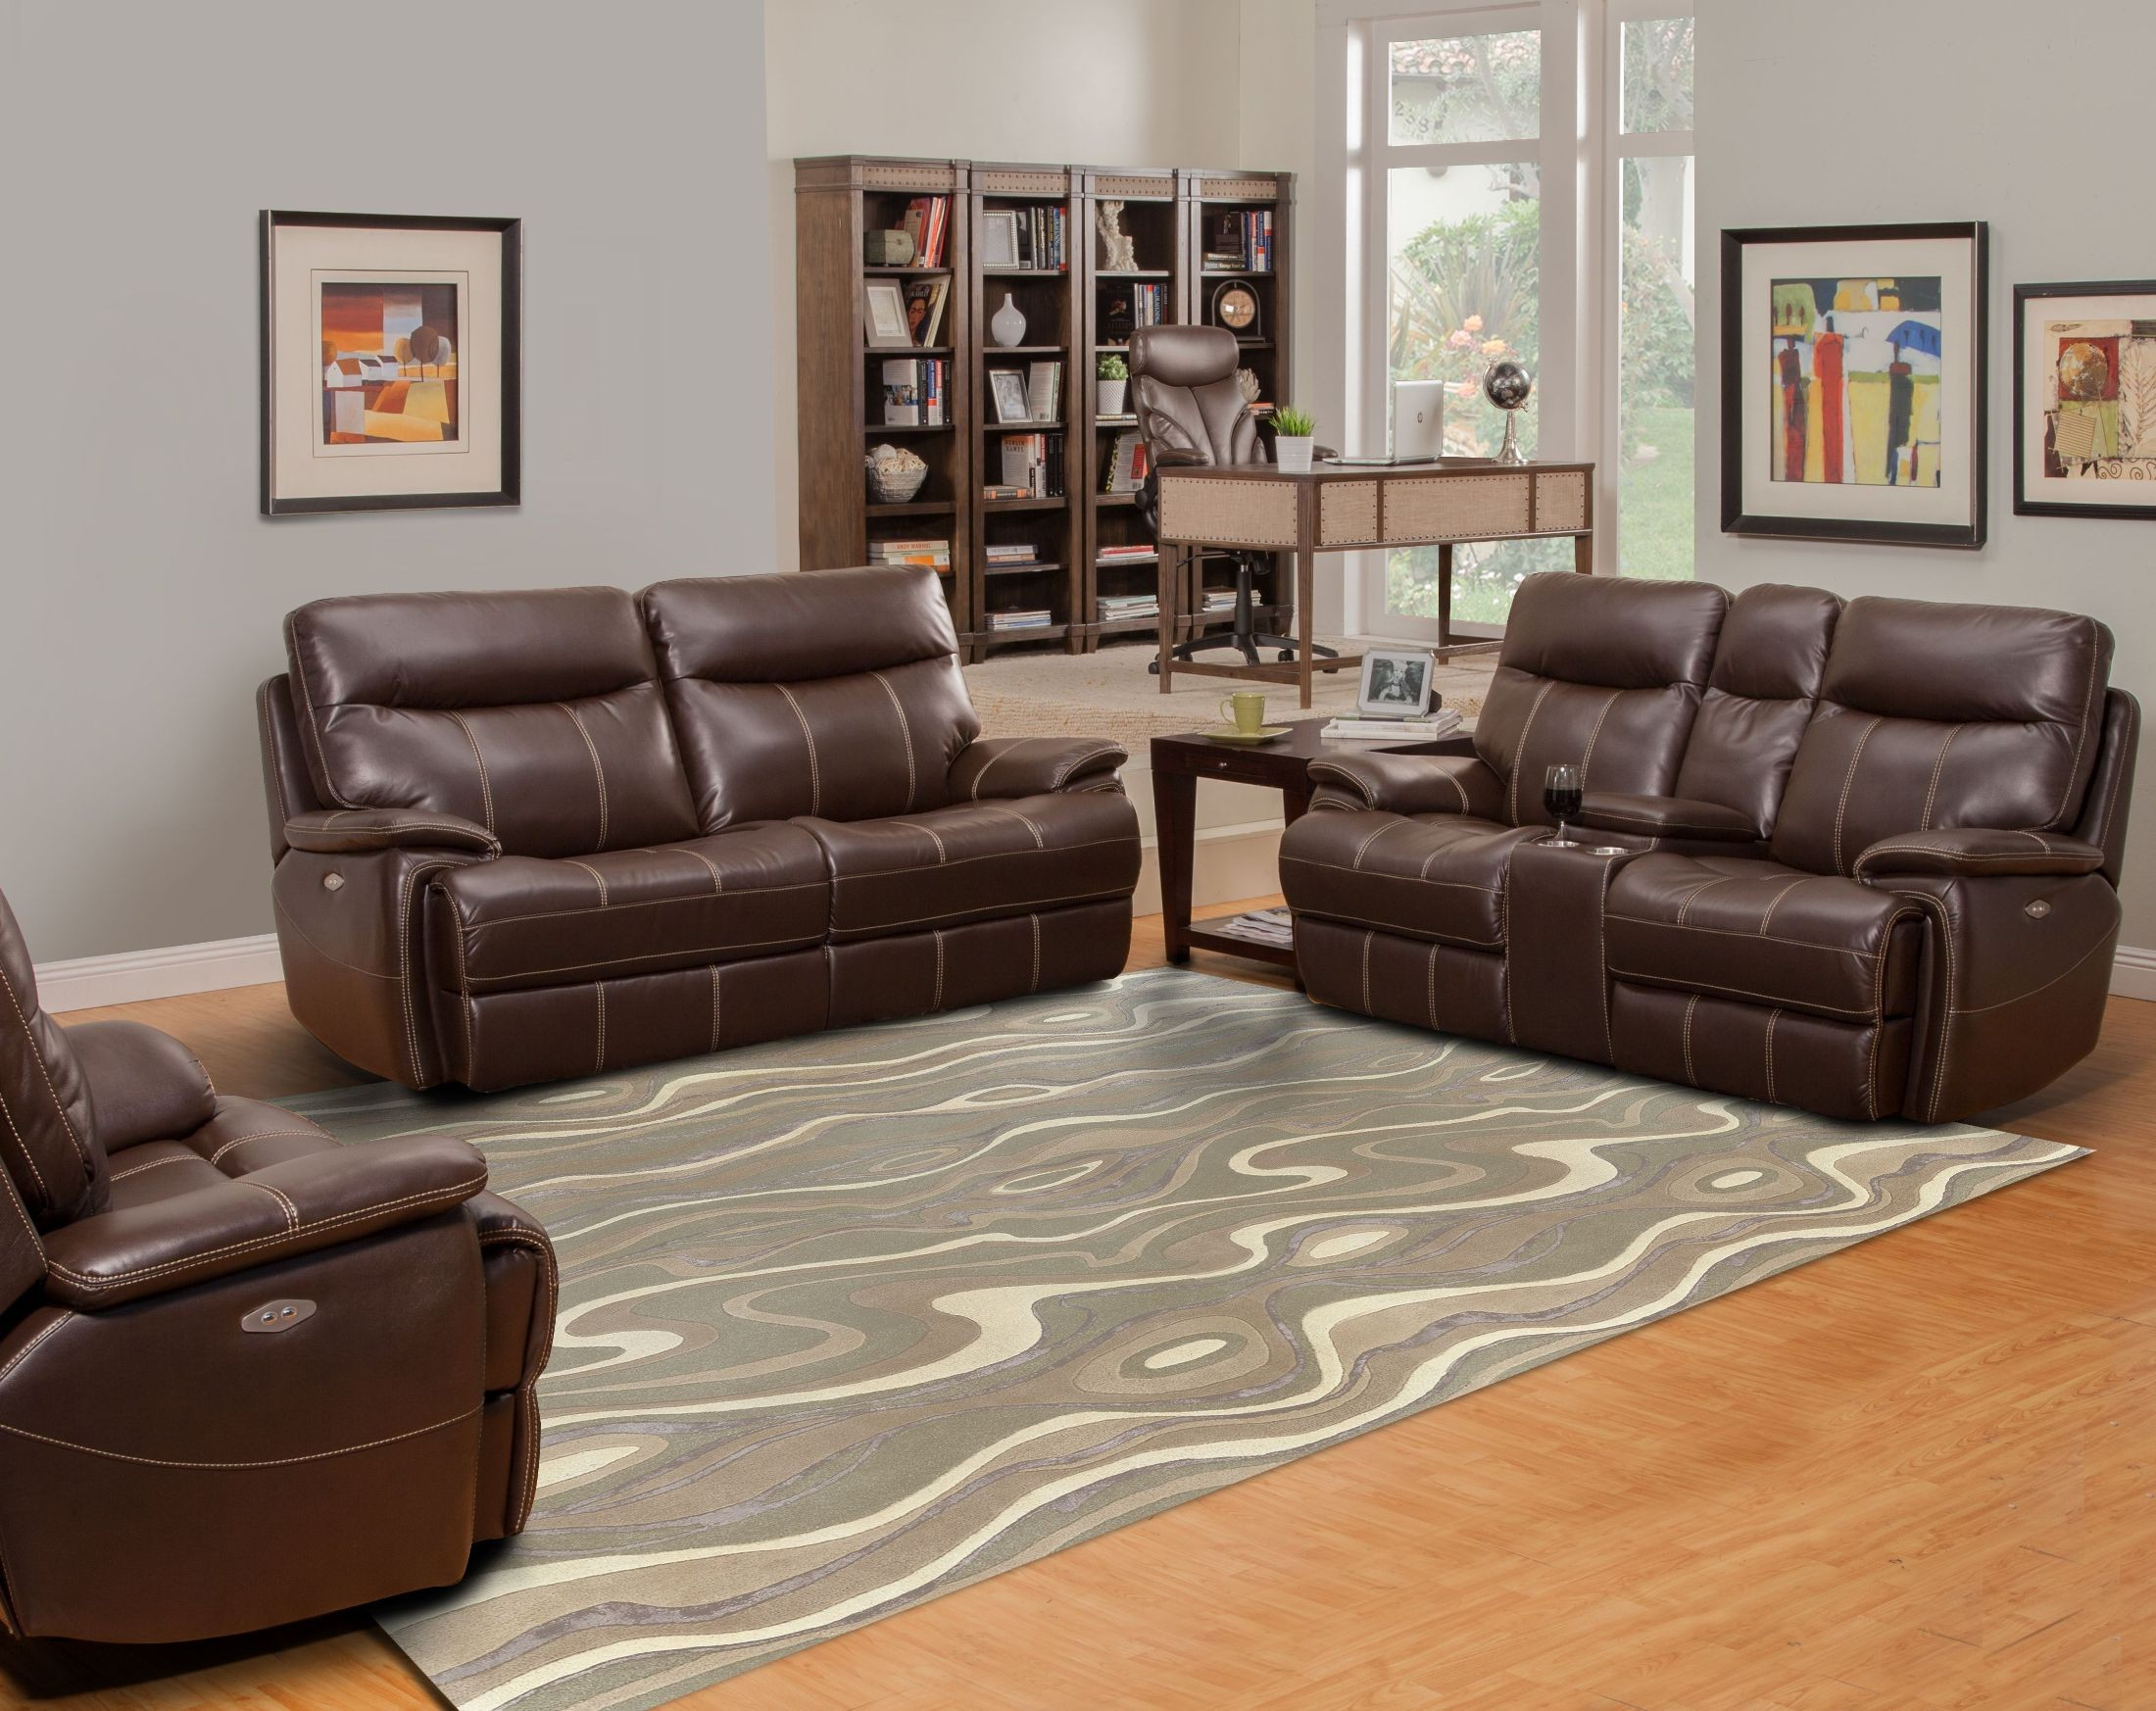 Dylan Mahogany Dual Power Reclining Living Room Set From: reclining living room furniture